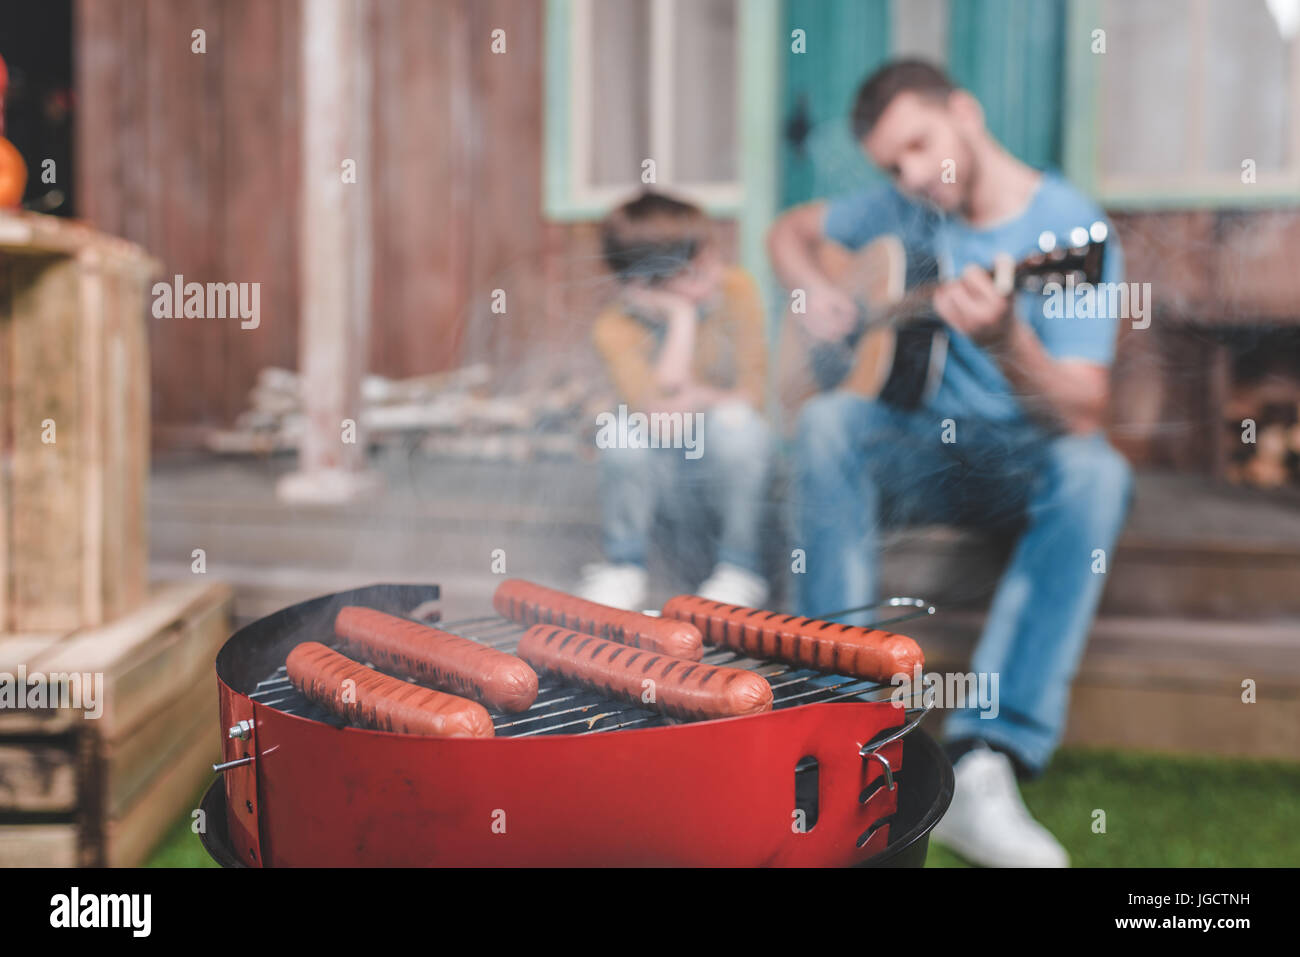 hot dog sausages on grill with family spend time together behind - Stock Image